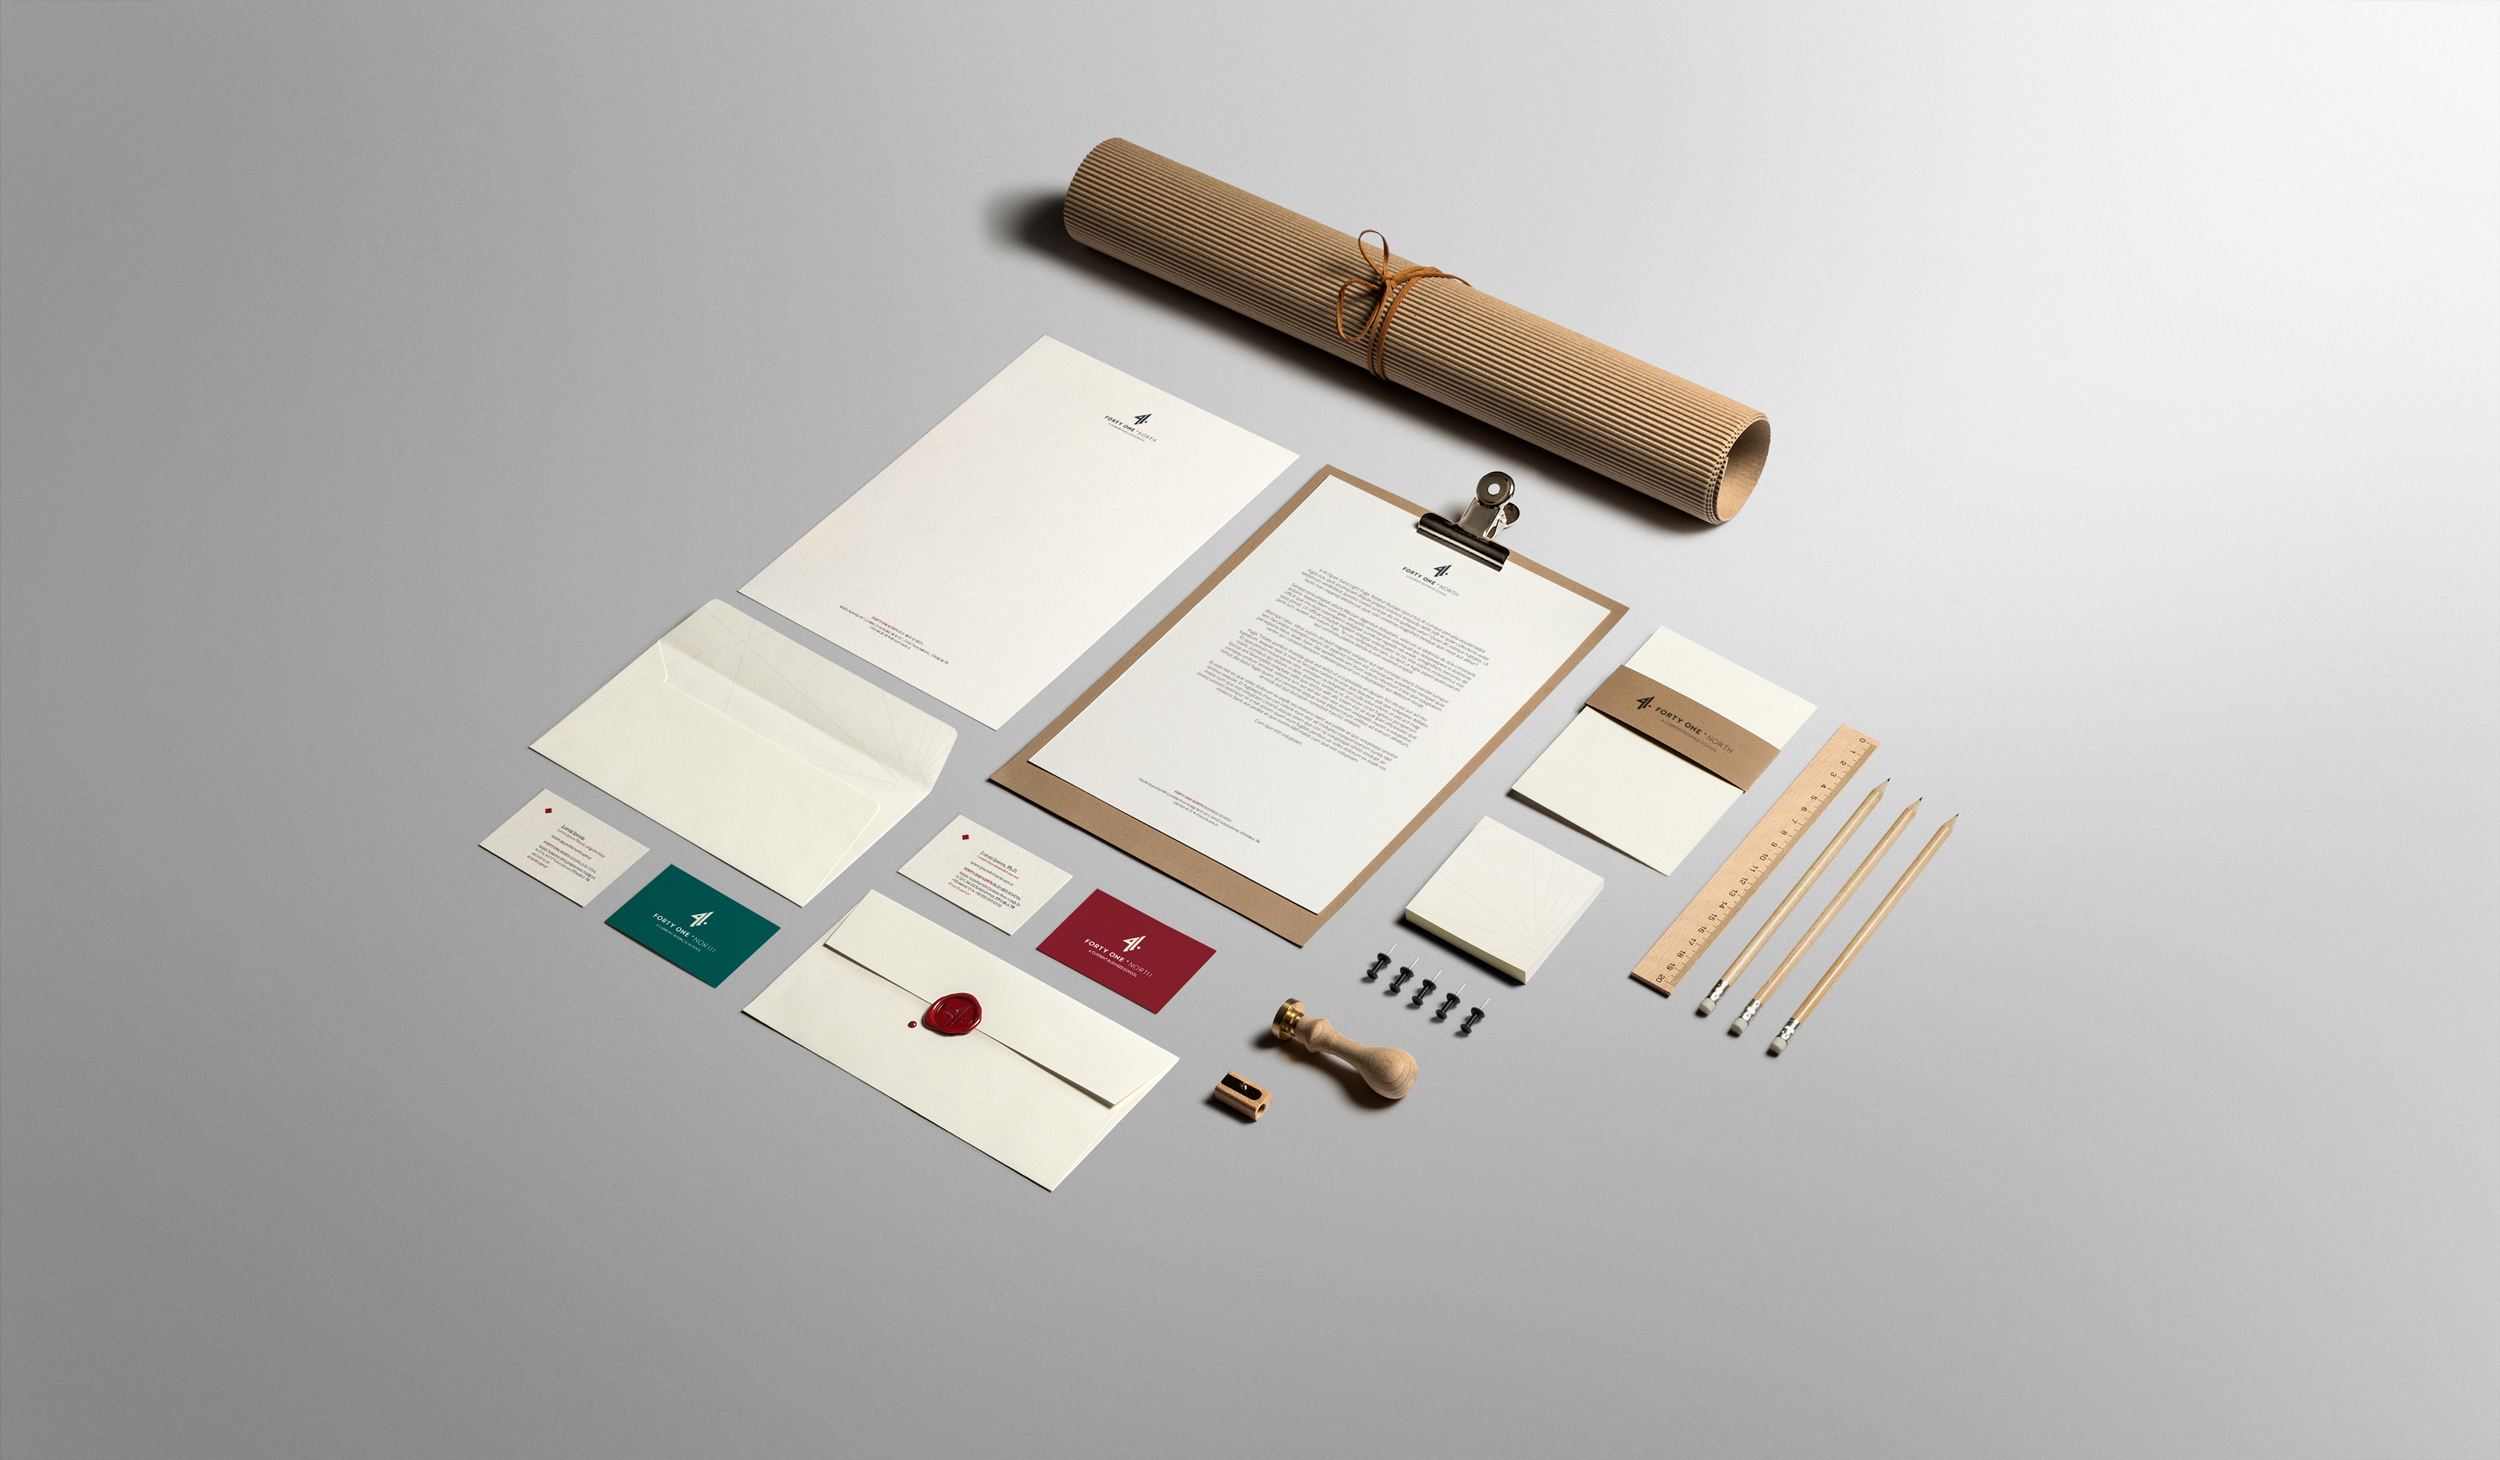 41_North_CRAFT-Stationery-01